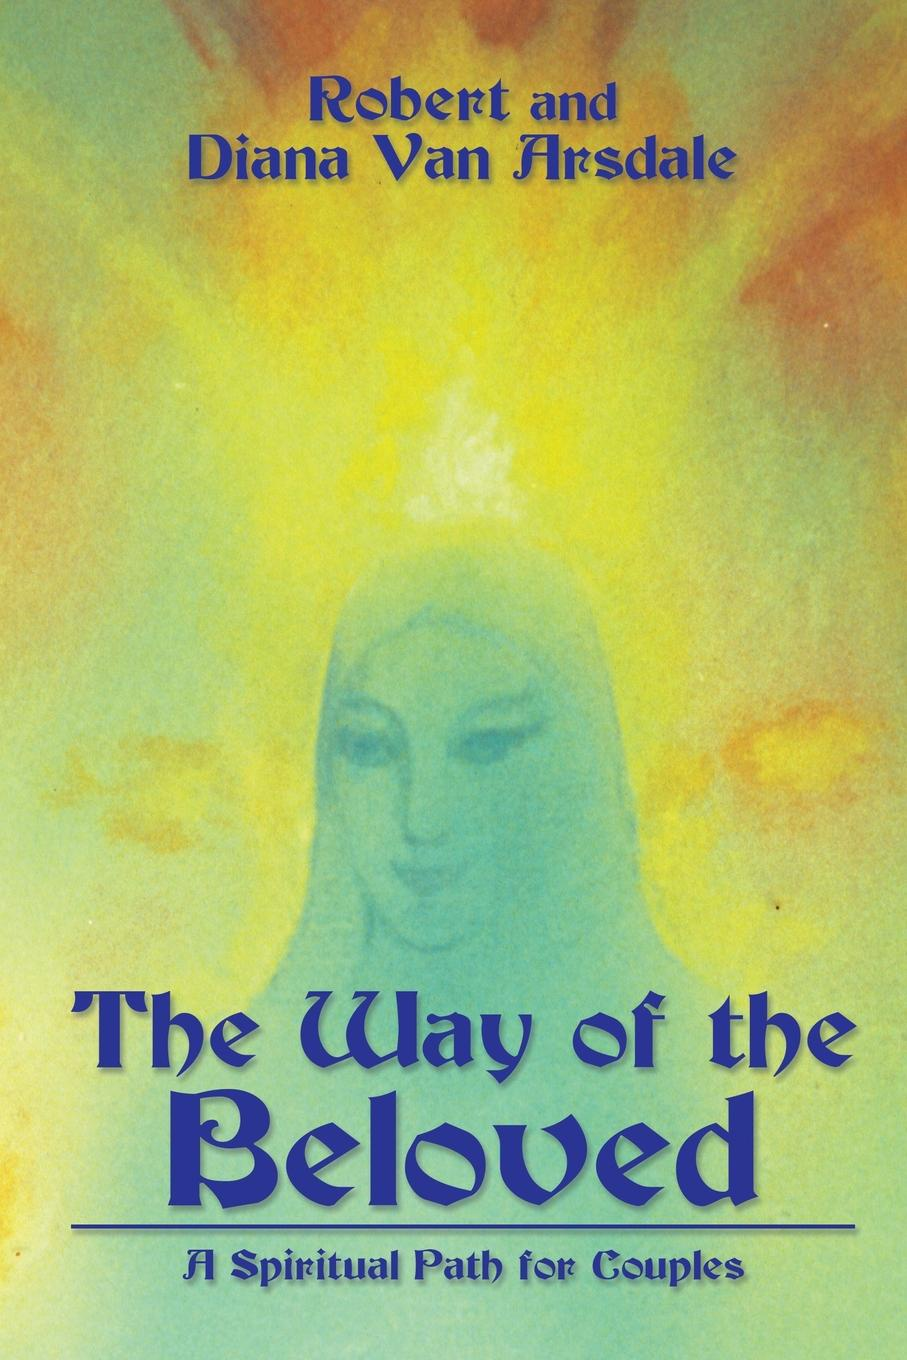 The Way of the Beloved. A Spiritual Path for Couples